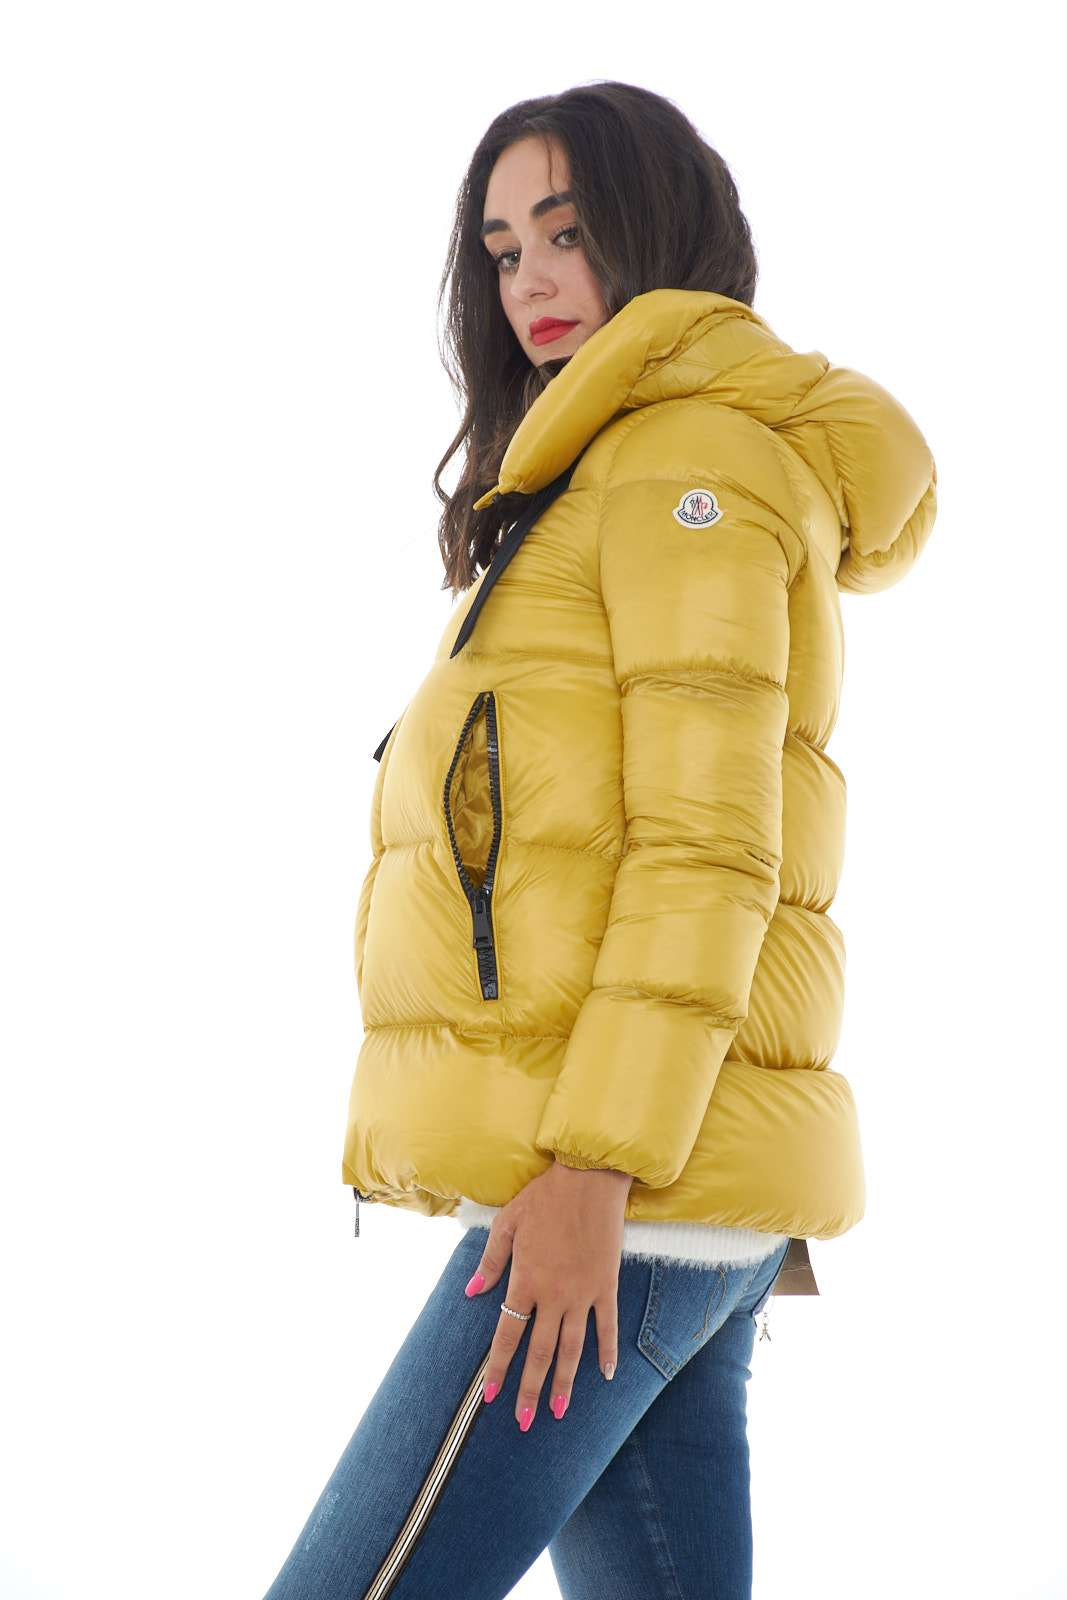 https://www.parmax.com/media/catalog/product/a/i/ai-outlet_parmax-piumino-donna-moncler-serin-b.jpg